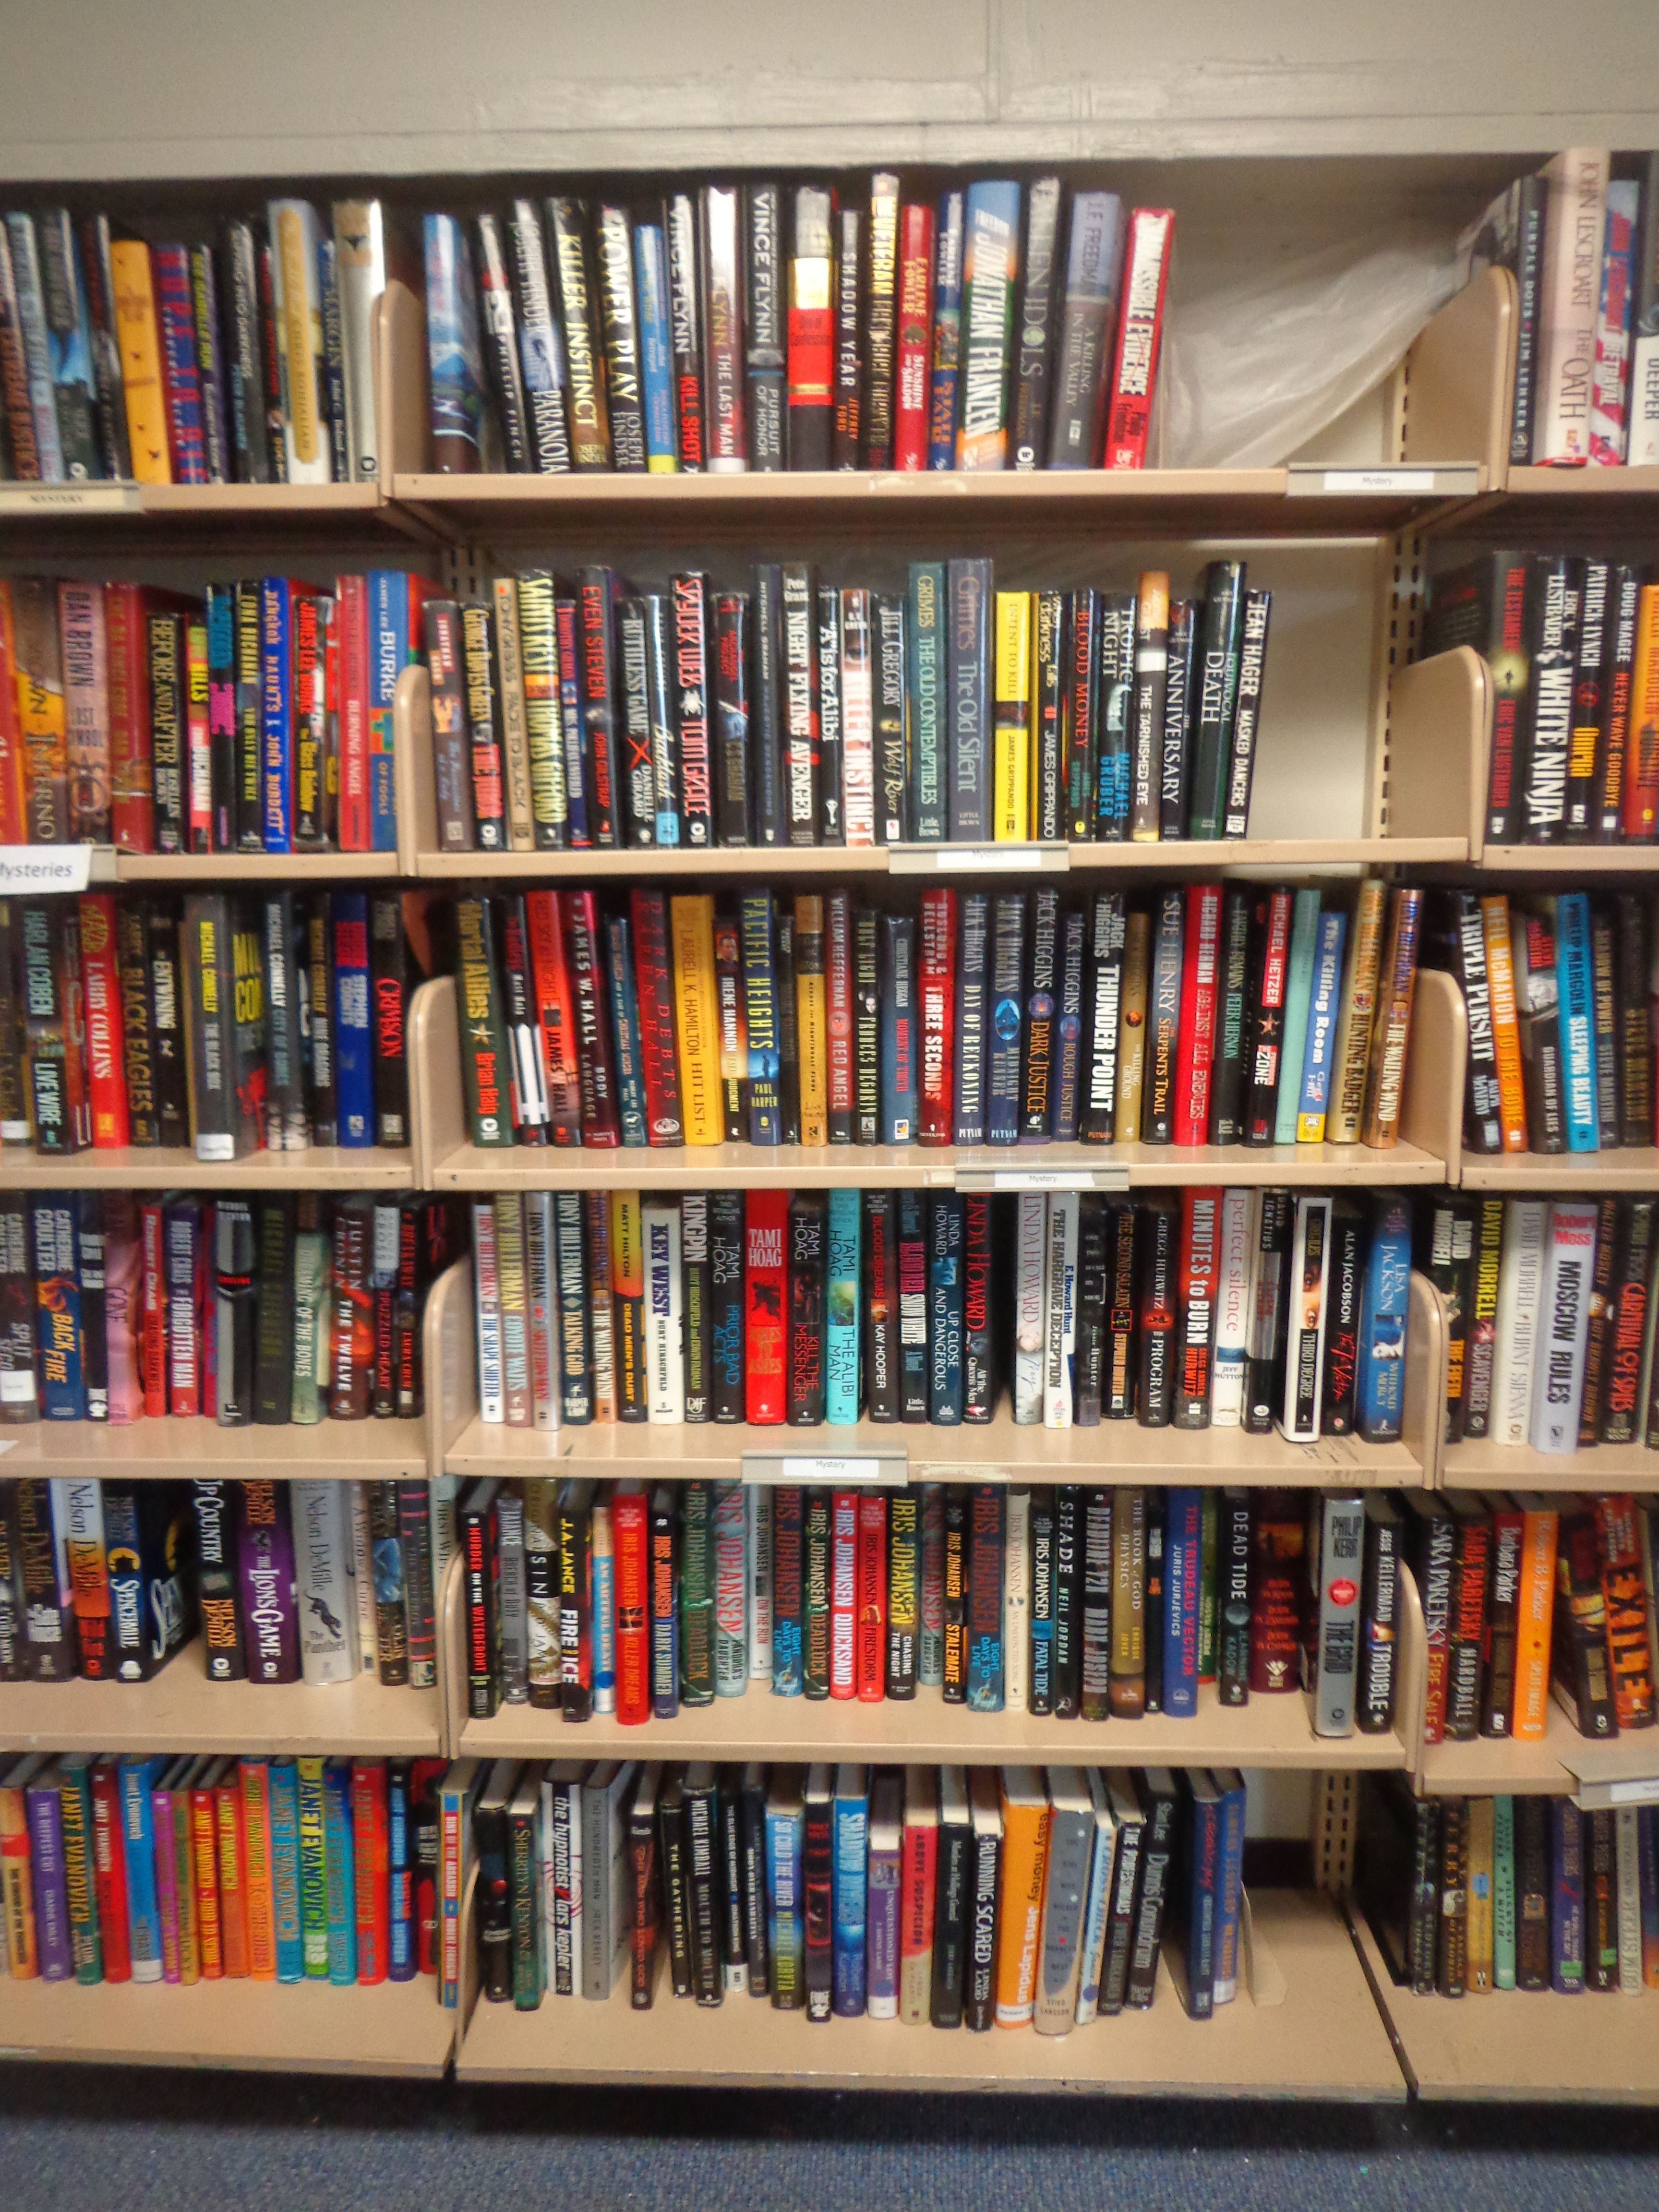 More Lots Of Mystery Suspense Hardcover Novels With Alphabetical Order Of Last Name S Authors Public Library Library Library Services